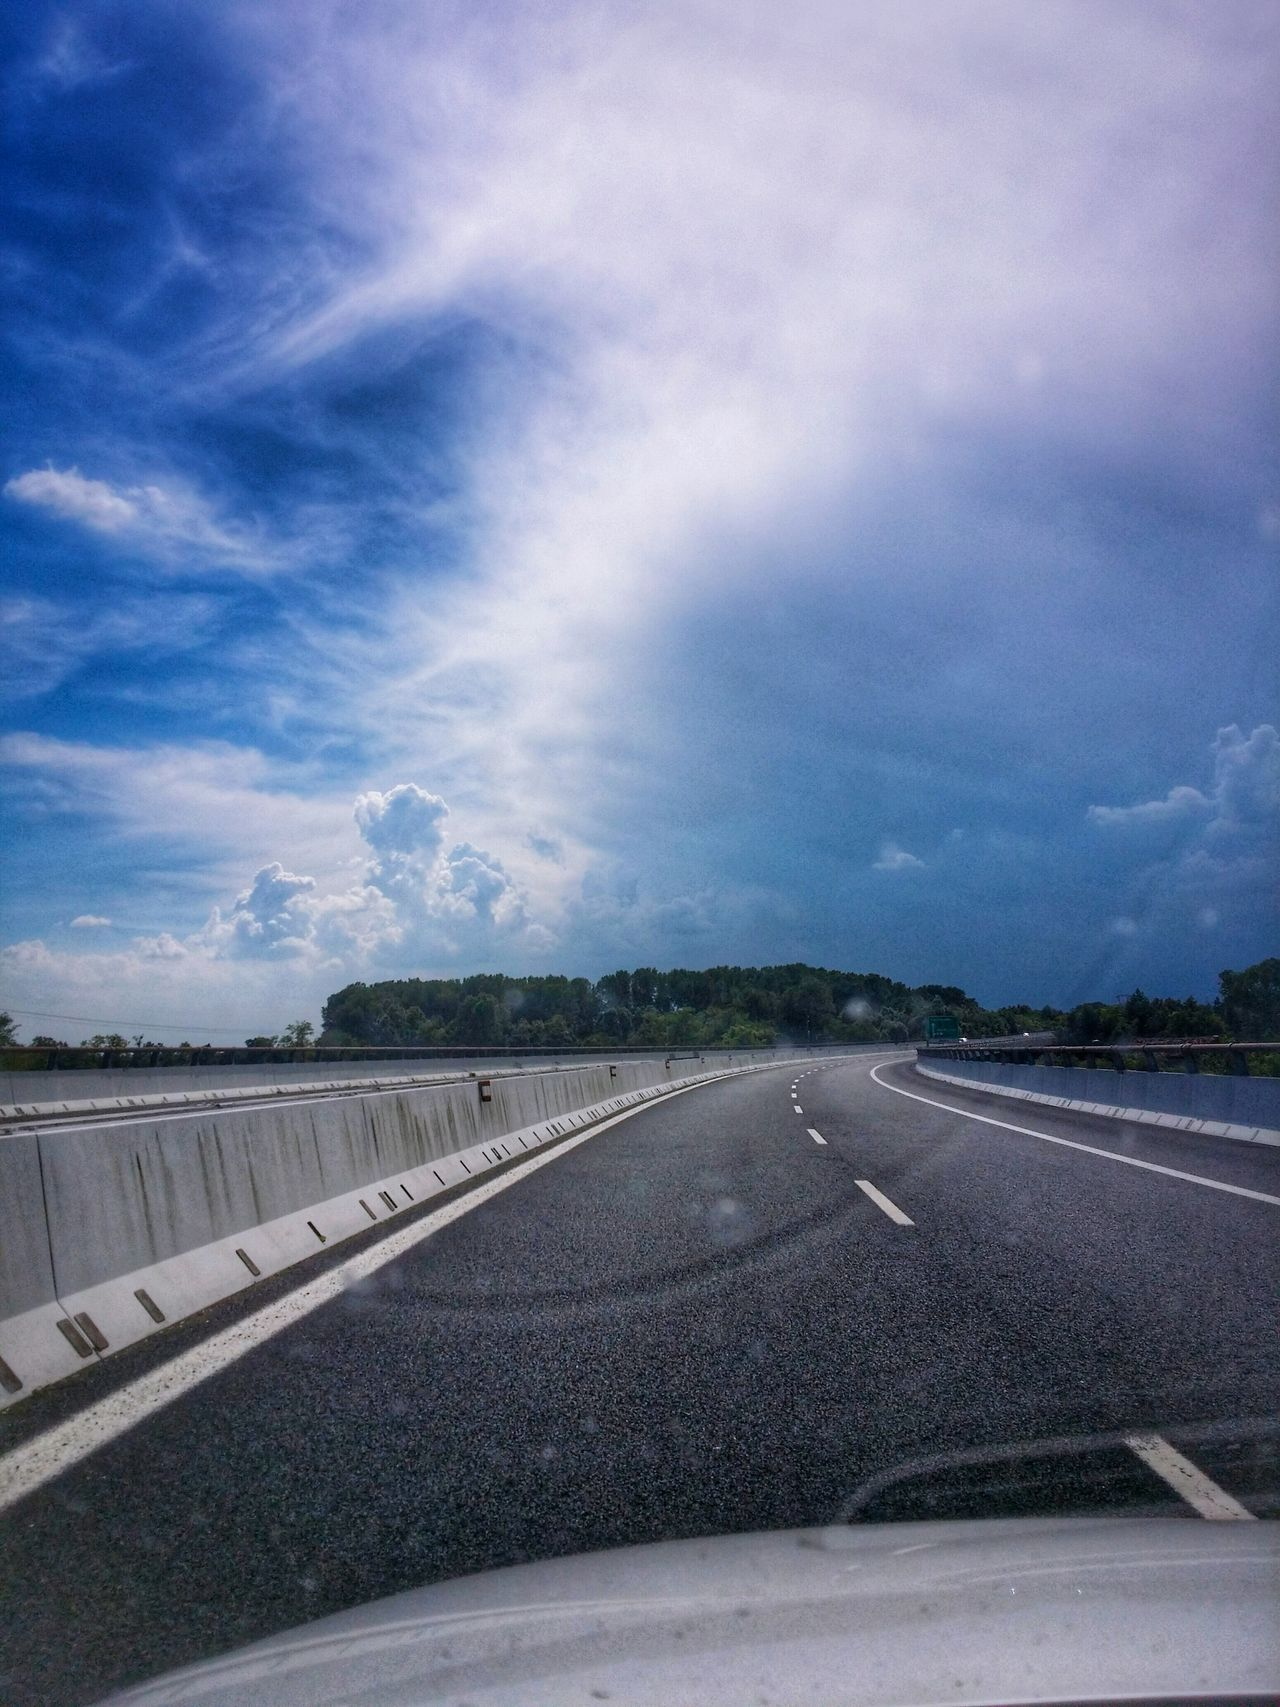 Free Wheeling Joy Of Driving Motorway Driving Travel Photography Travel Voyage Traveling Mobile Photography Fine Art Photography Backlight Cumulus Clouds Before A Storm Reflections And Shadows